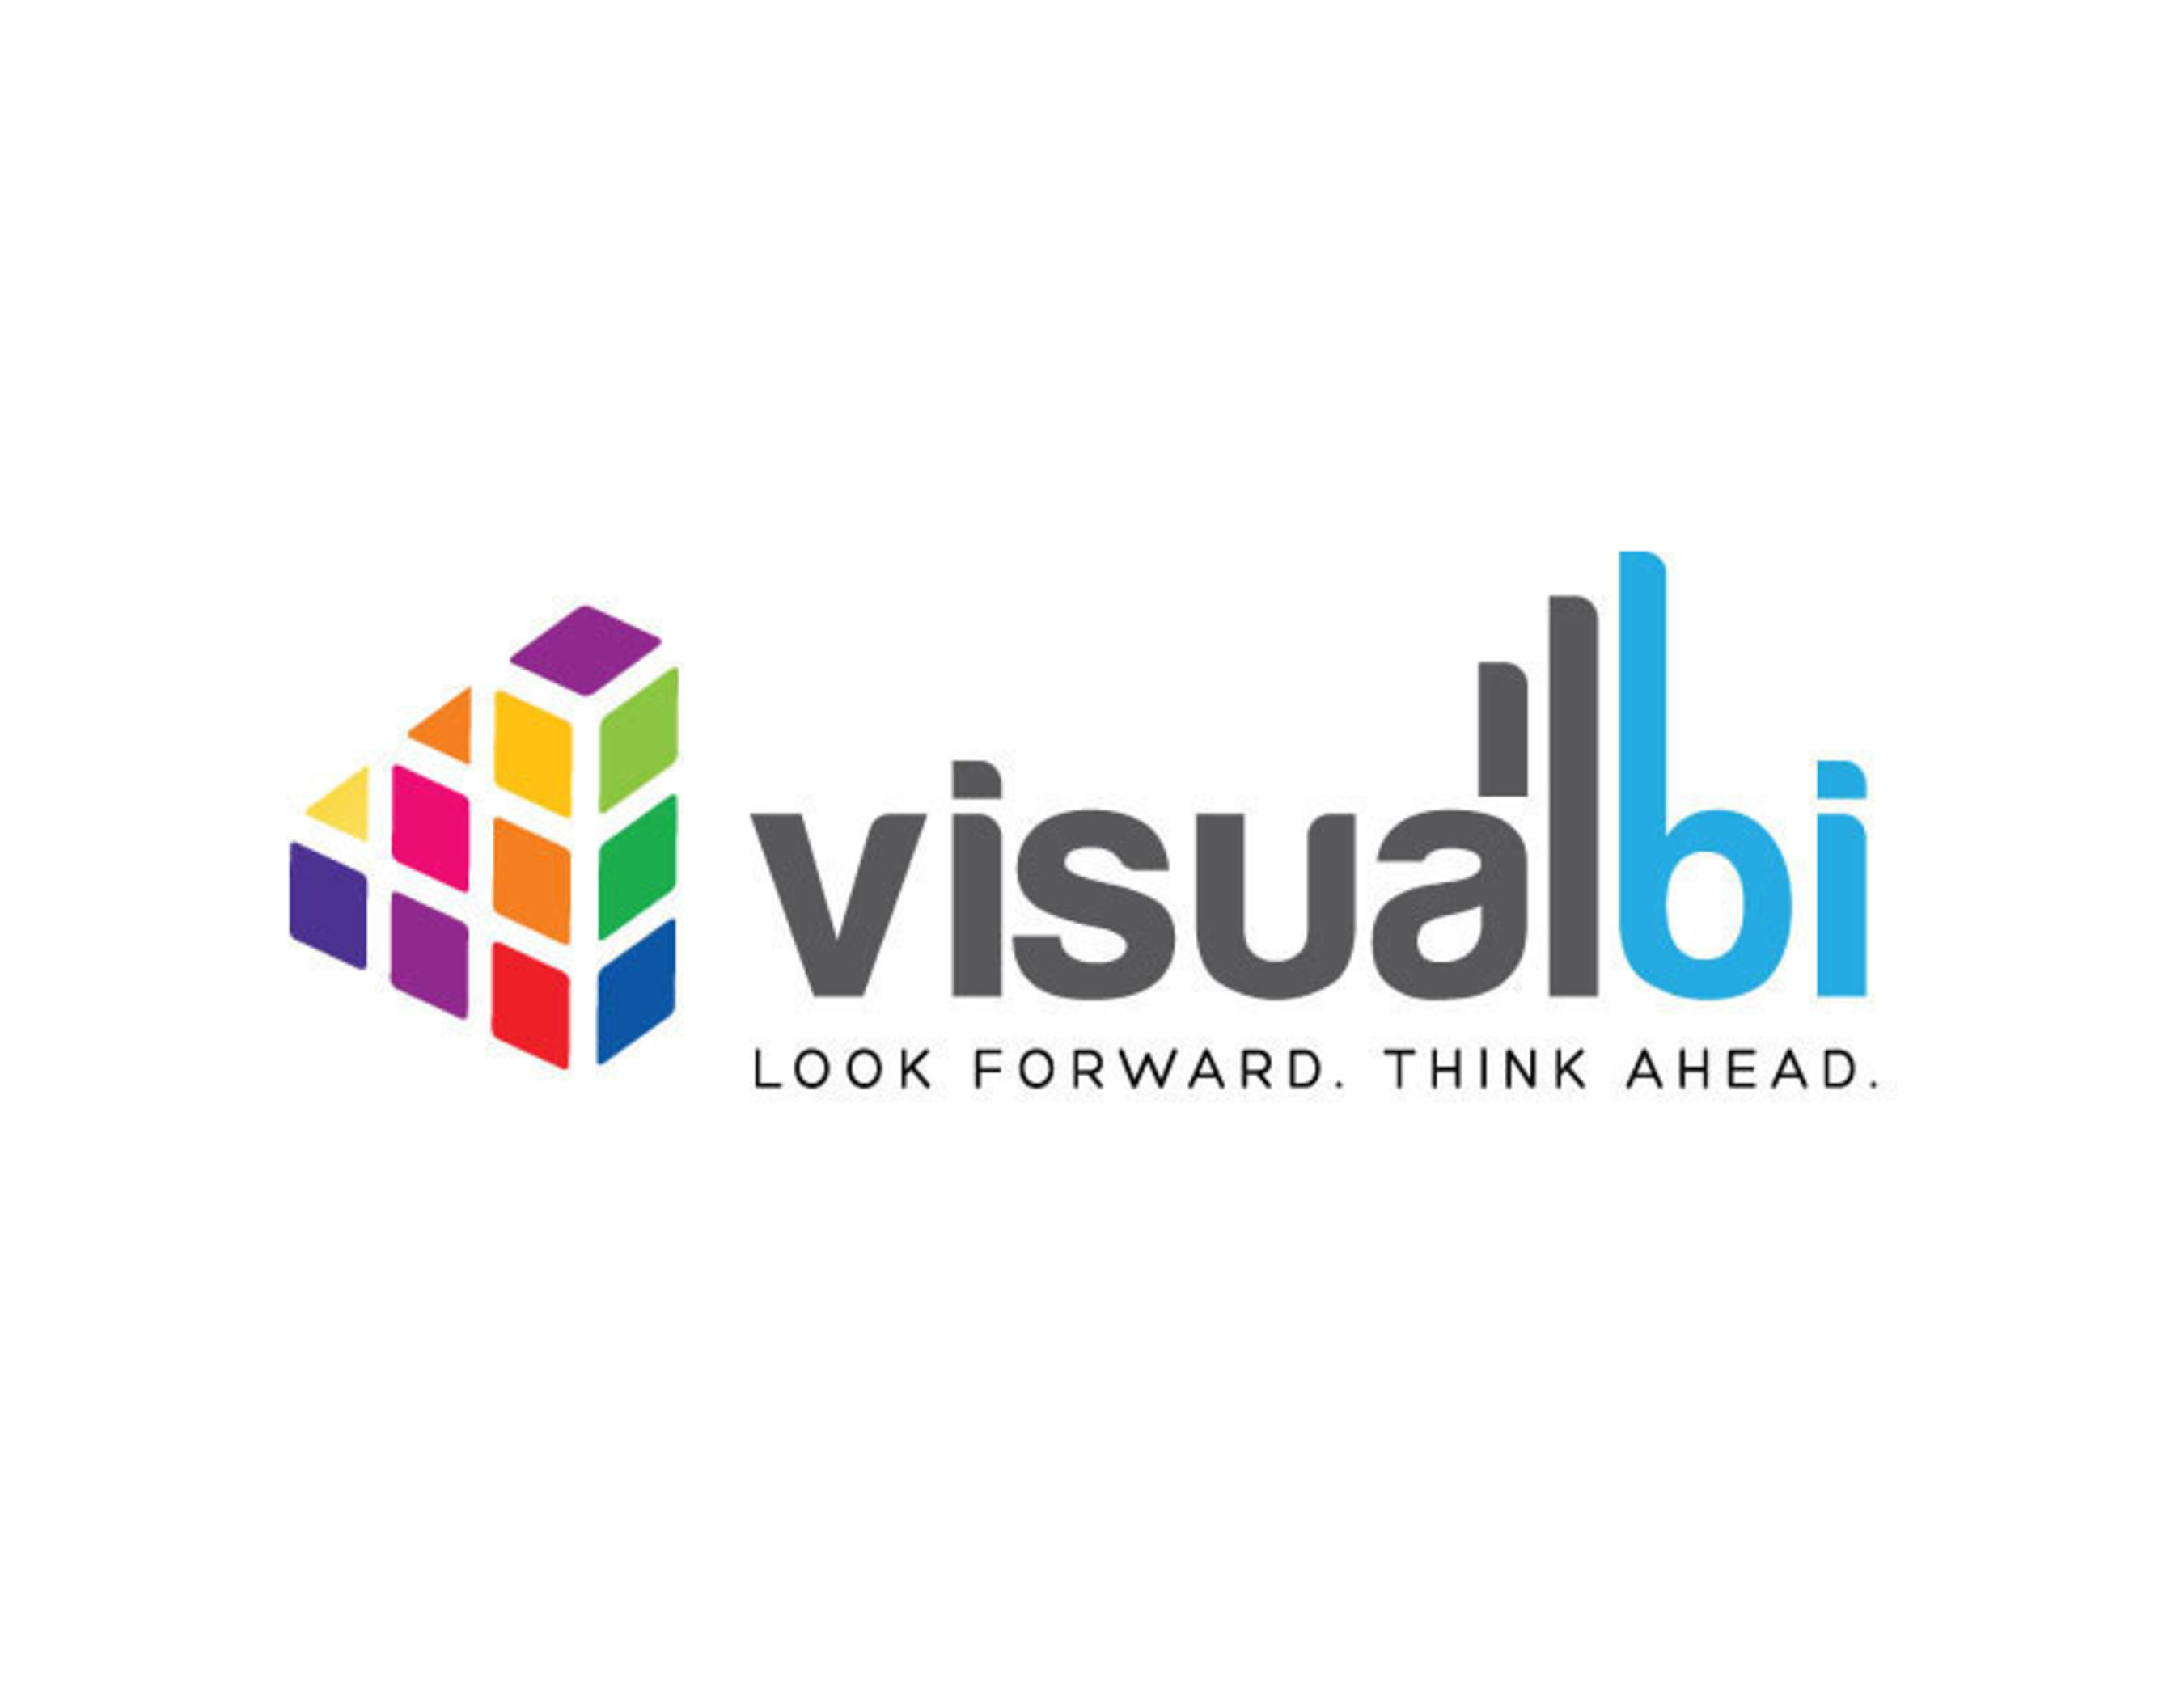 BI Enablement Firm Visual BI Solutions Ranks No. 151 on the 2015 Inc. 5000 in Business Products & Services Category